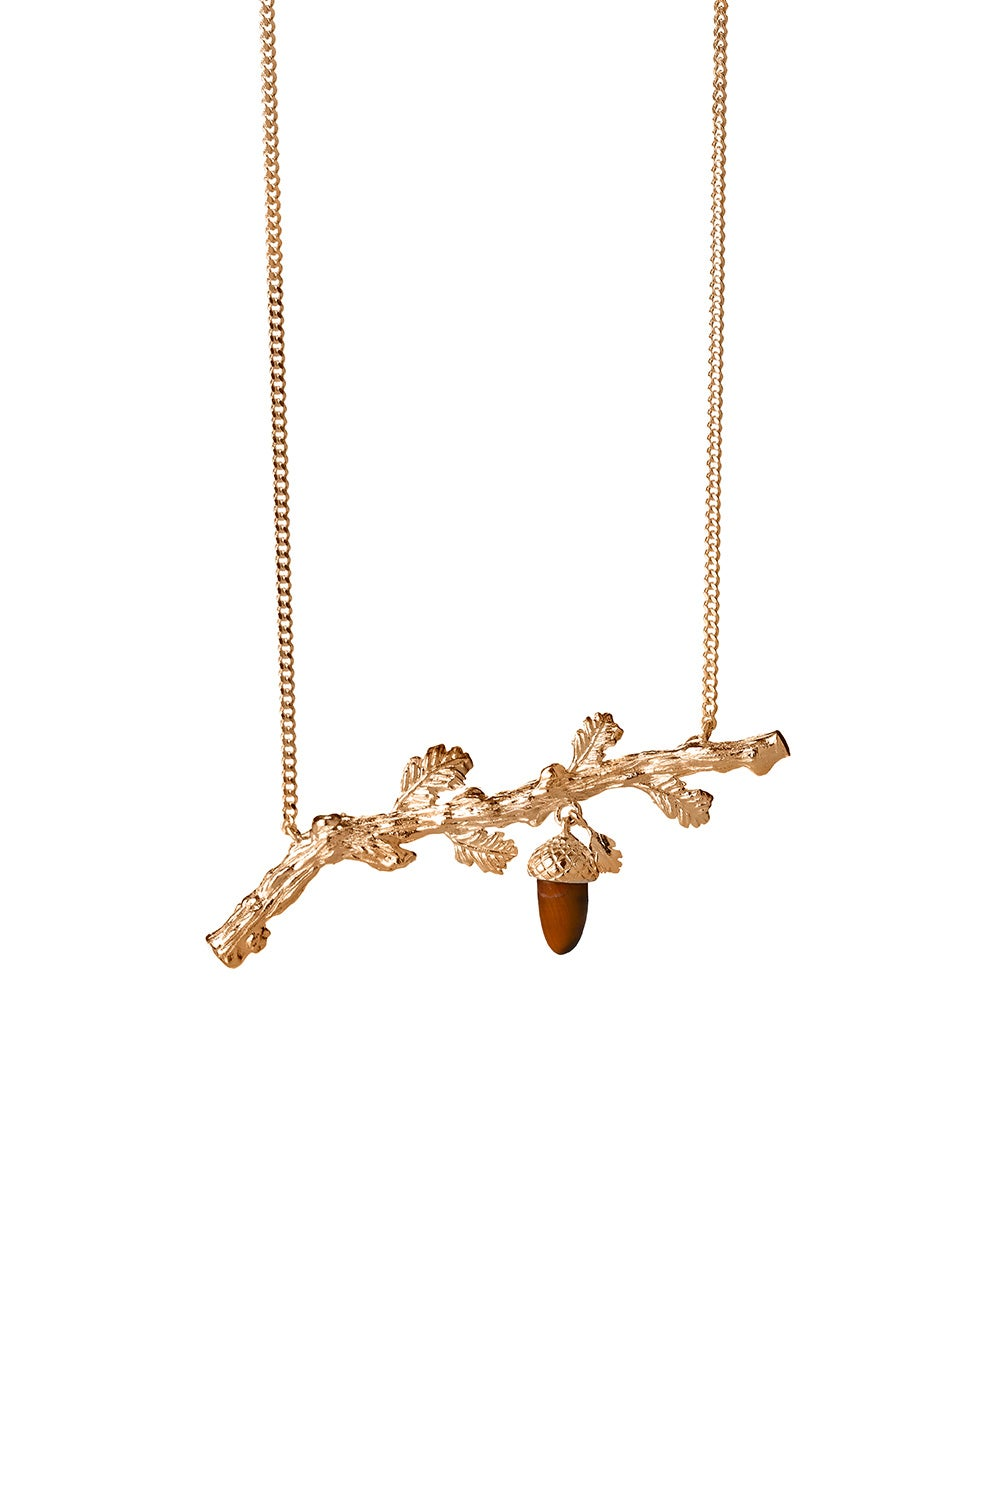 Oak Branch Necklace Gold